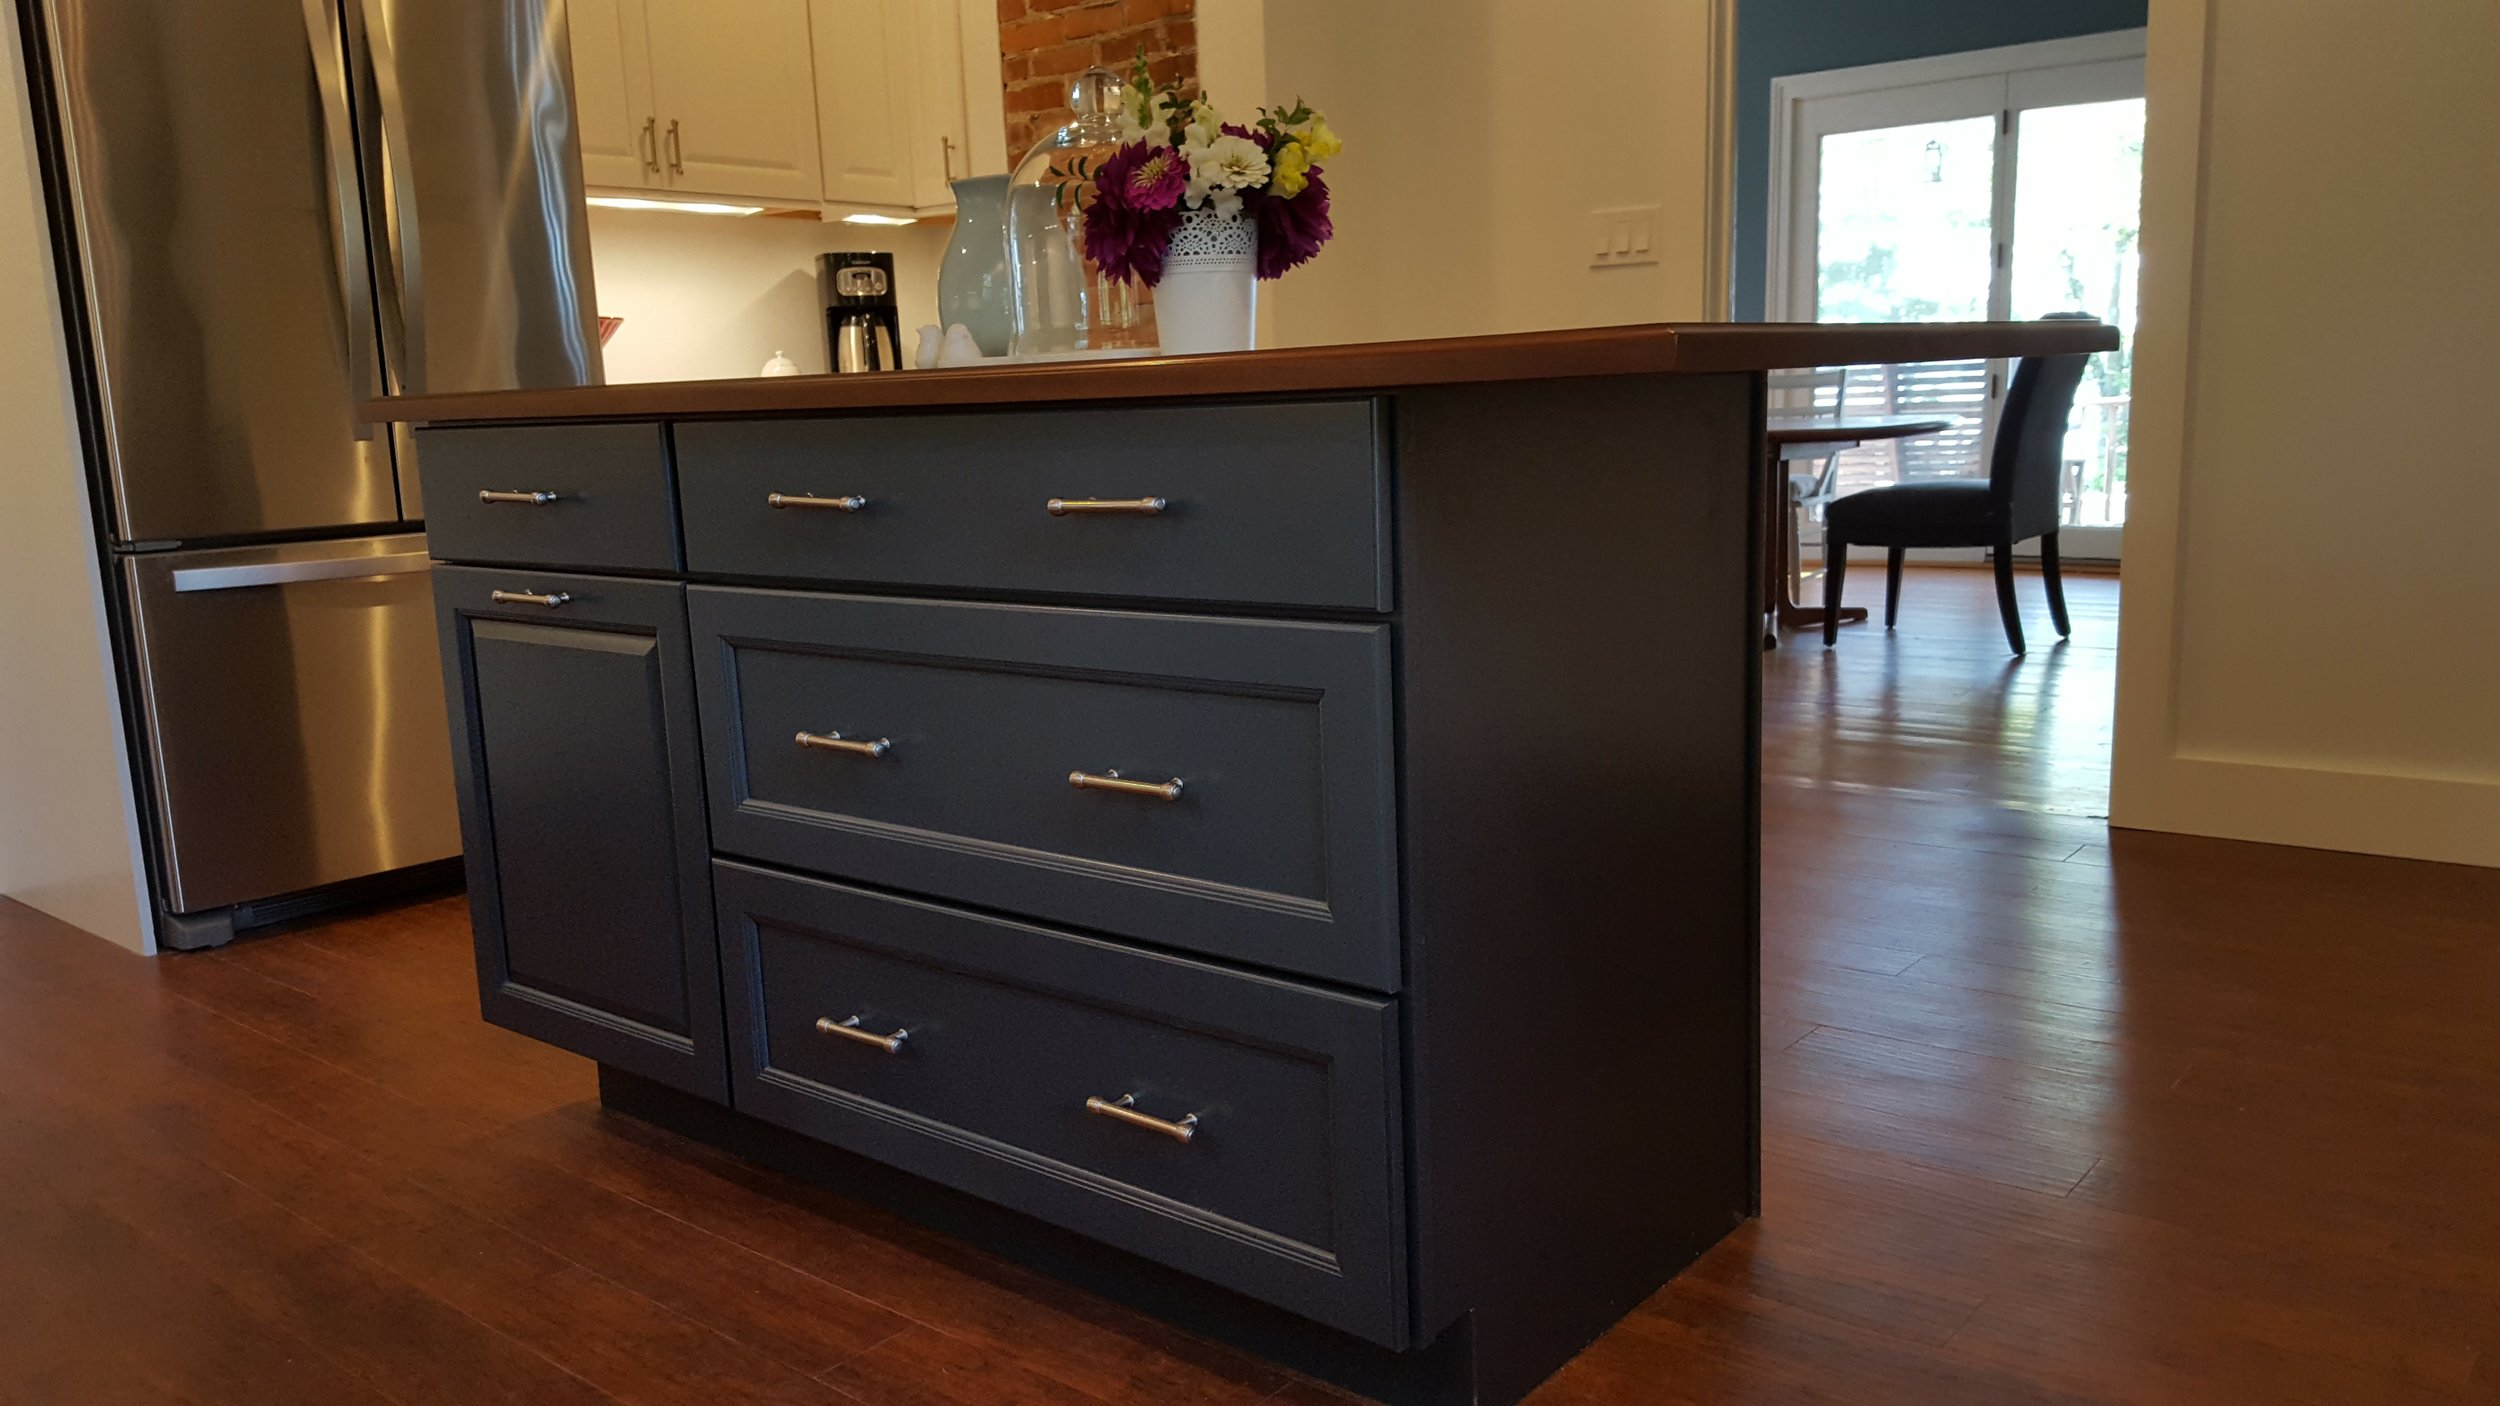 Kitchen Remodel with New Island in Waterford CT   Shaw Remodeling